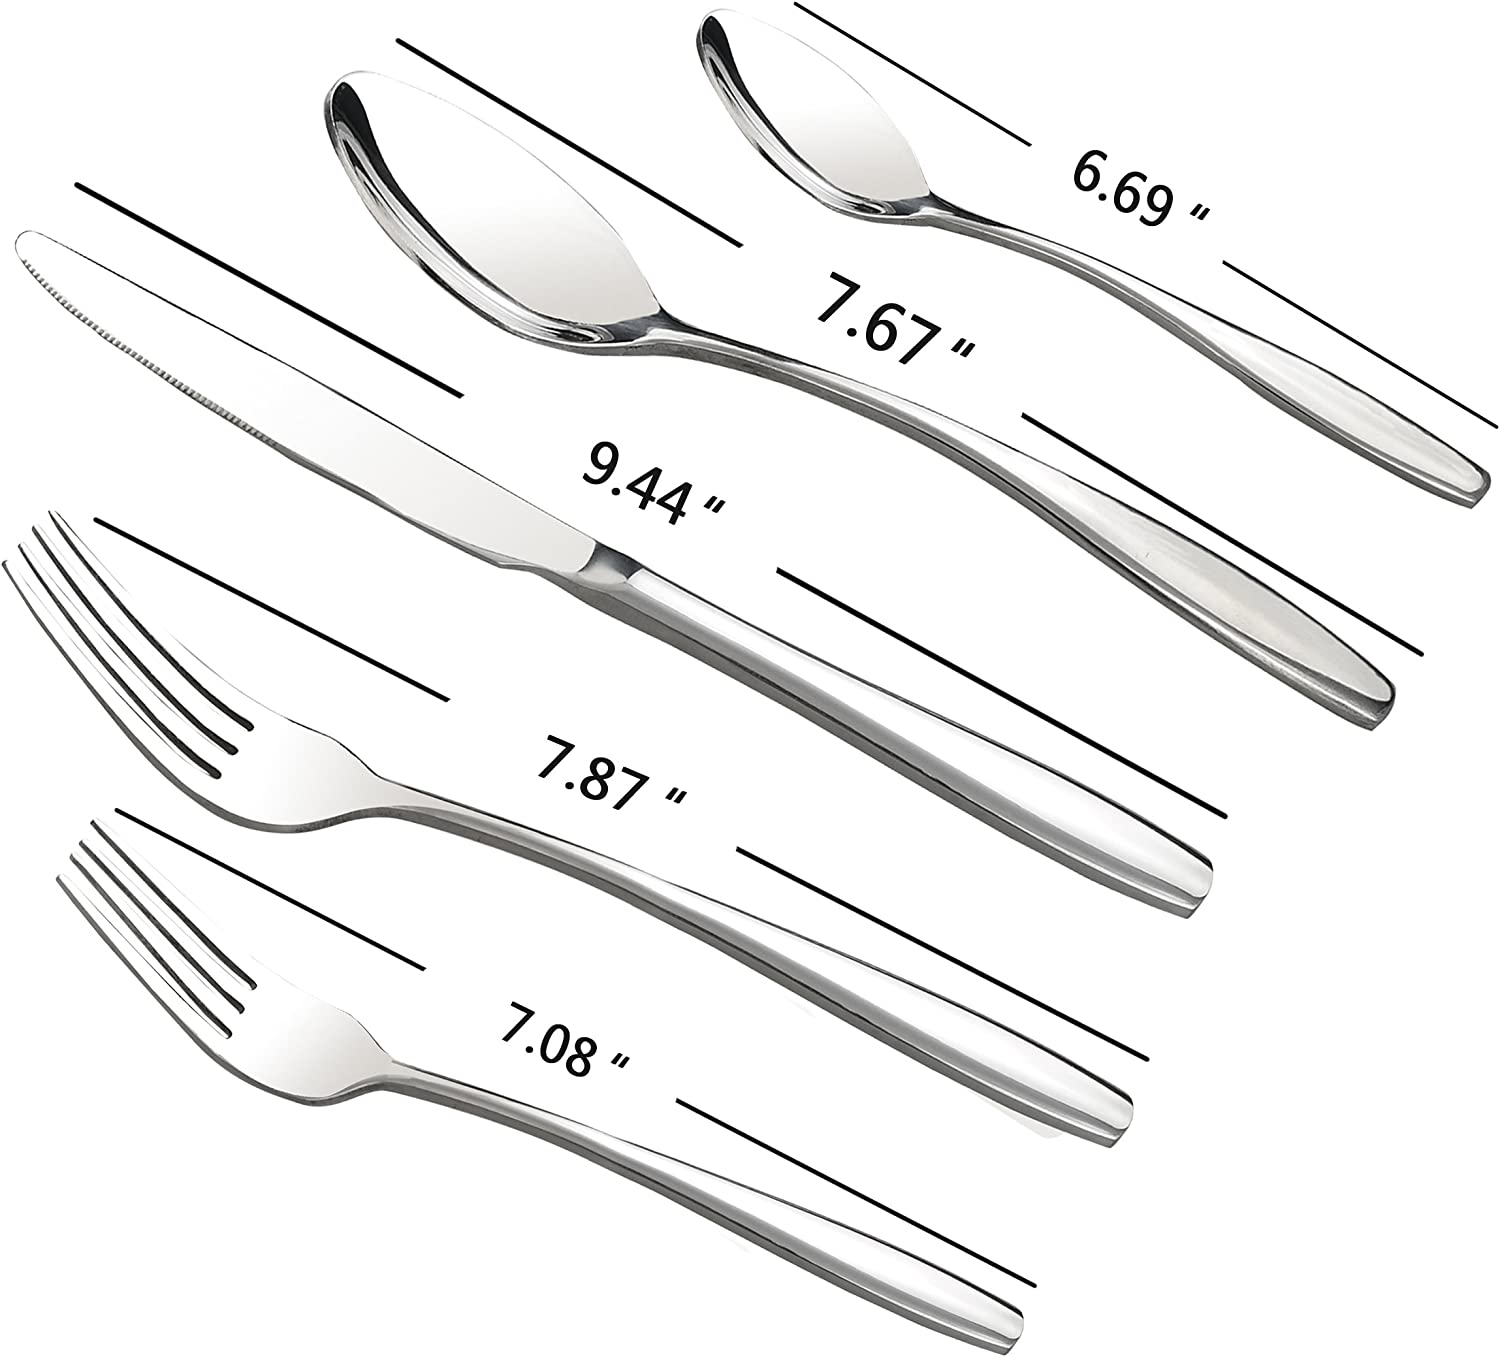 Service for 12 Ggbin 60 pieces Stainless Steel Silverware Set